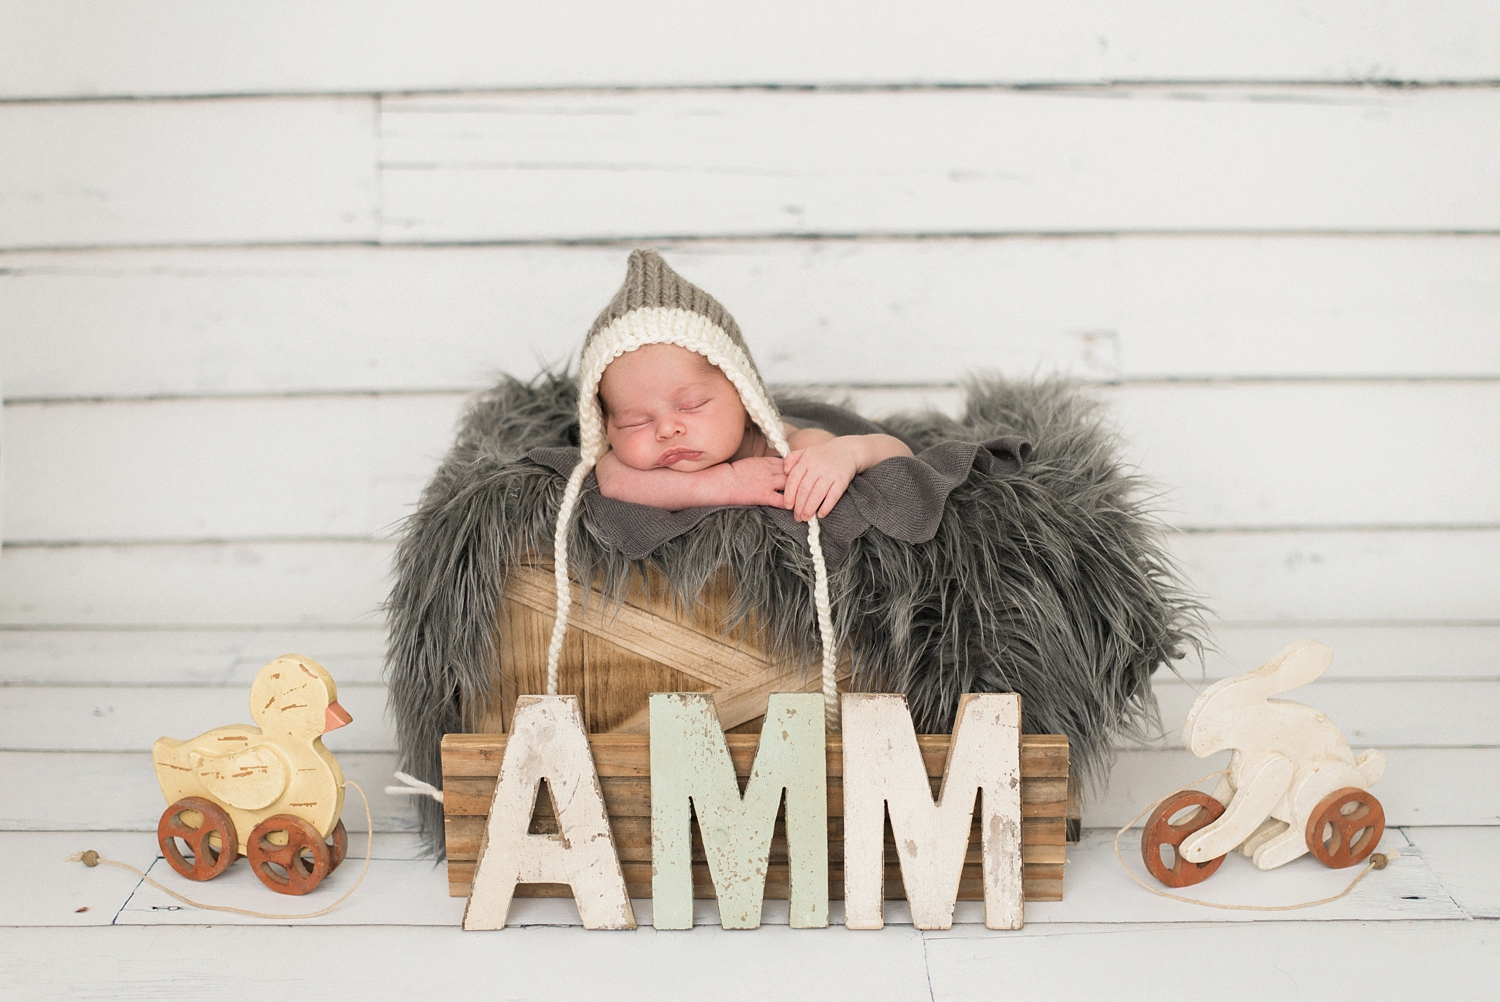 best-portland-oregon-newborn-photographer-sleeping-baby-boy-in-basket-gray-knit-hat-nursery-letters-shelley-marie-photography-5.jpg